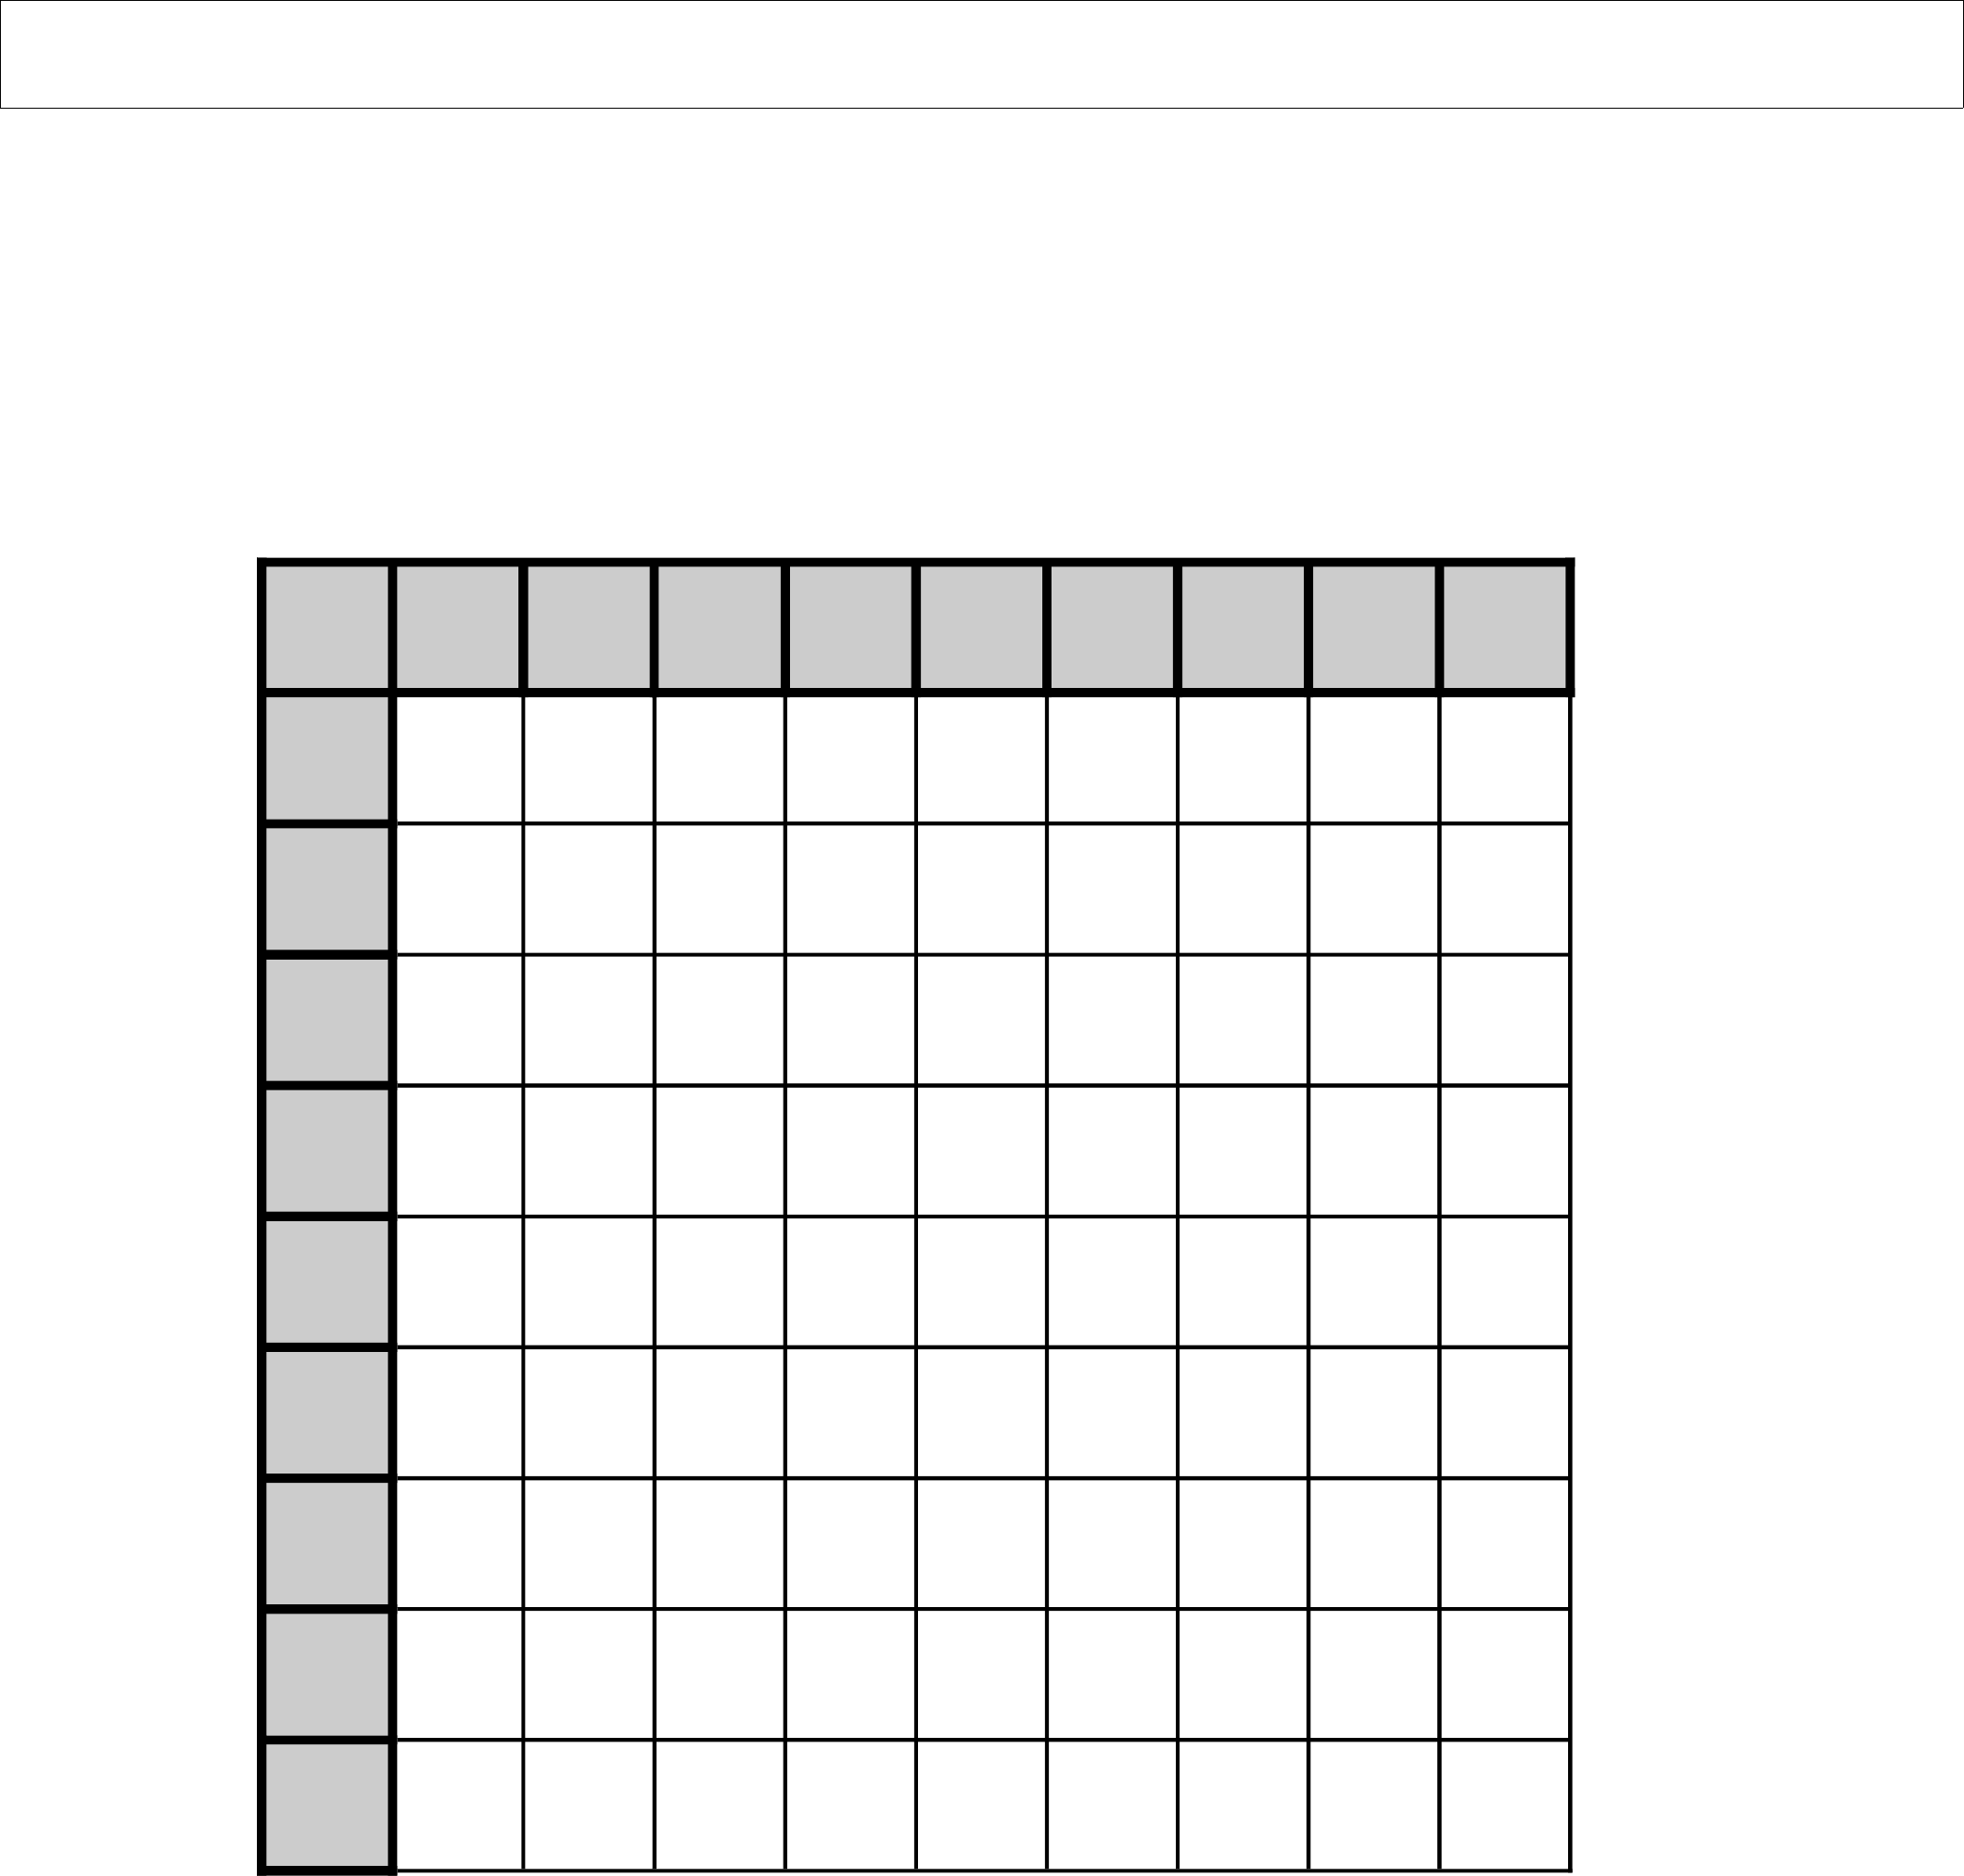 math worksheet : printable multiplication worksheets 0 12  1000 images about ideas  : Multiplication Worksheets 0 12